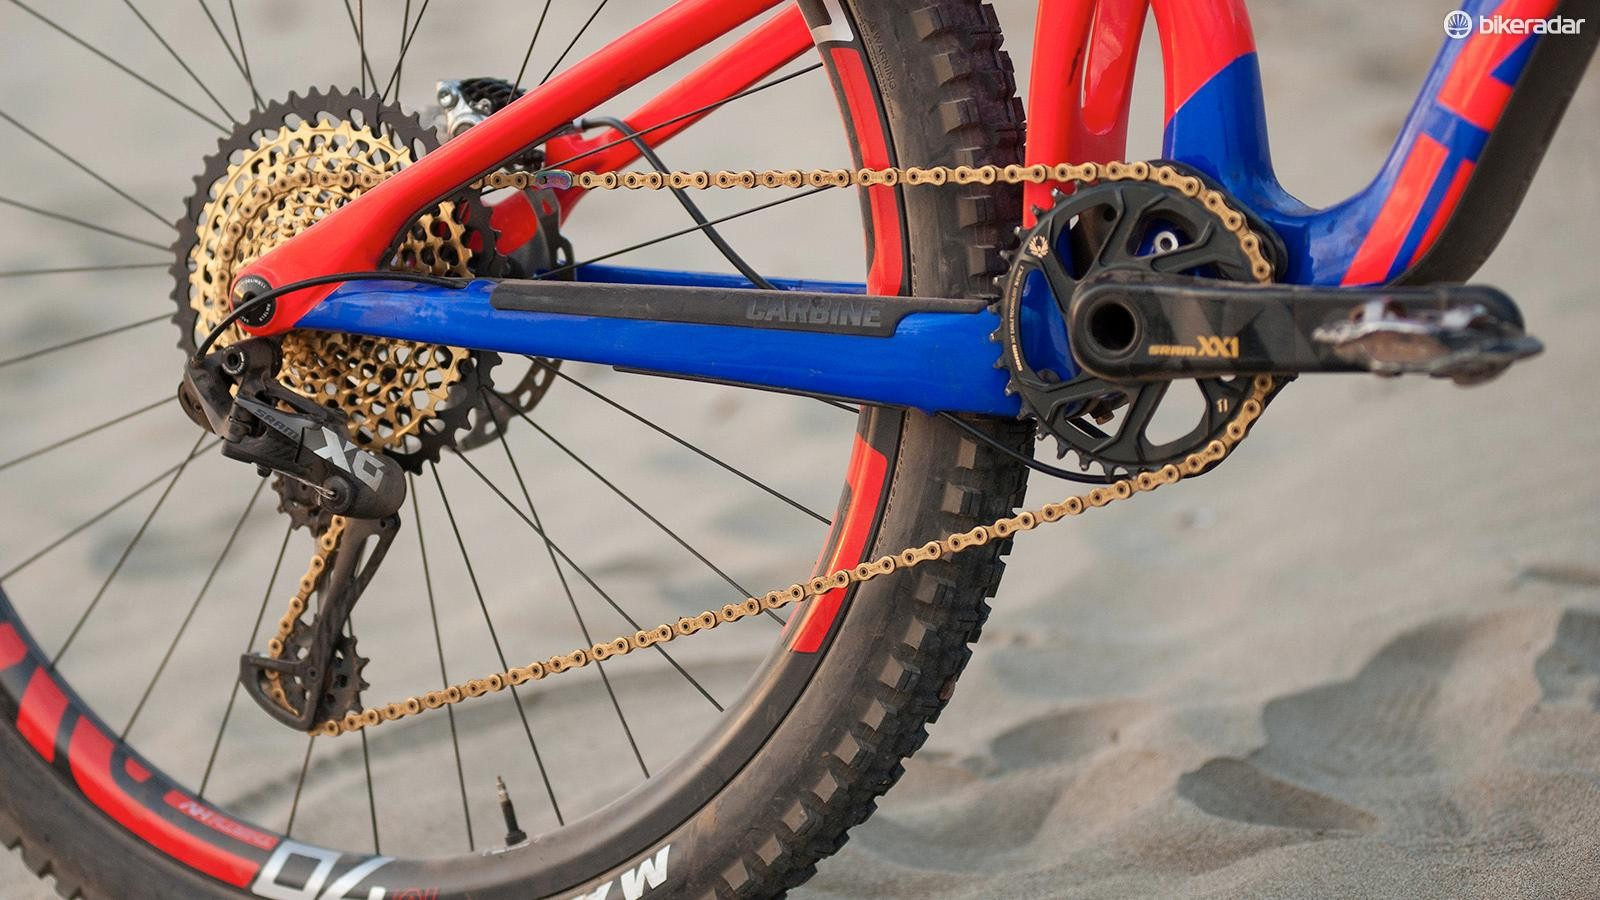 Want to scramble up the steepest hills? SRAM's XX1 Eagle will see you right